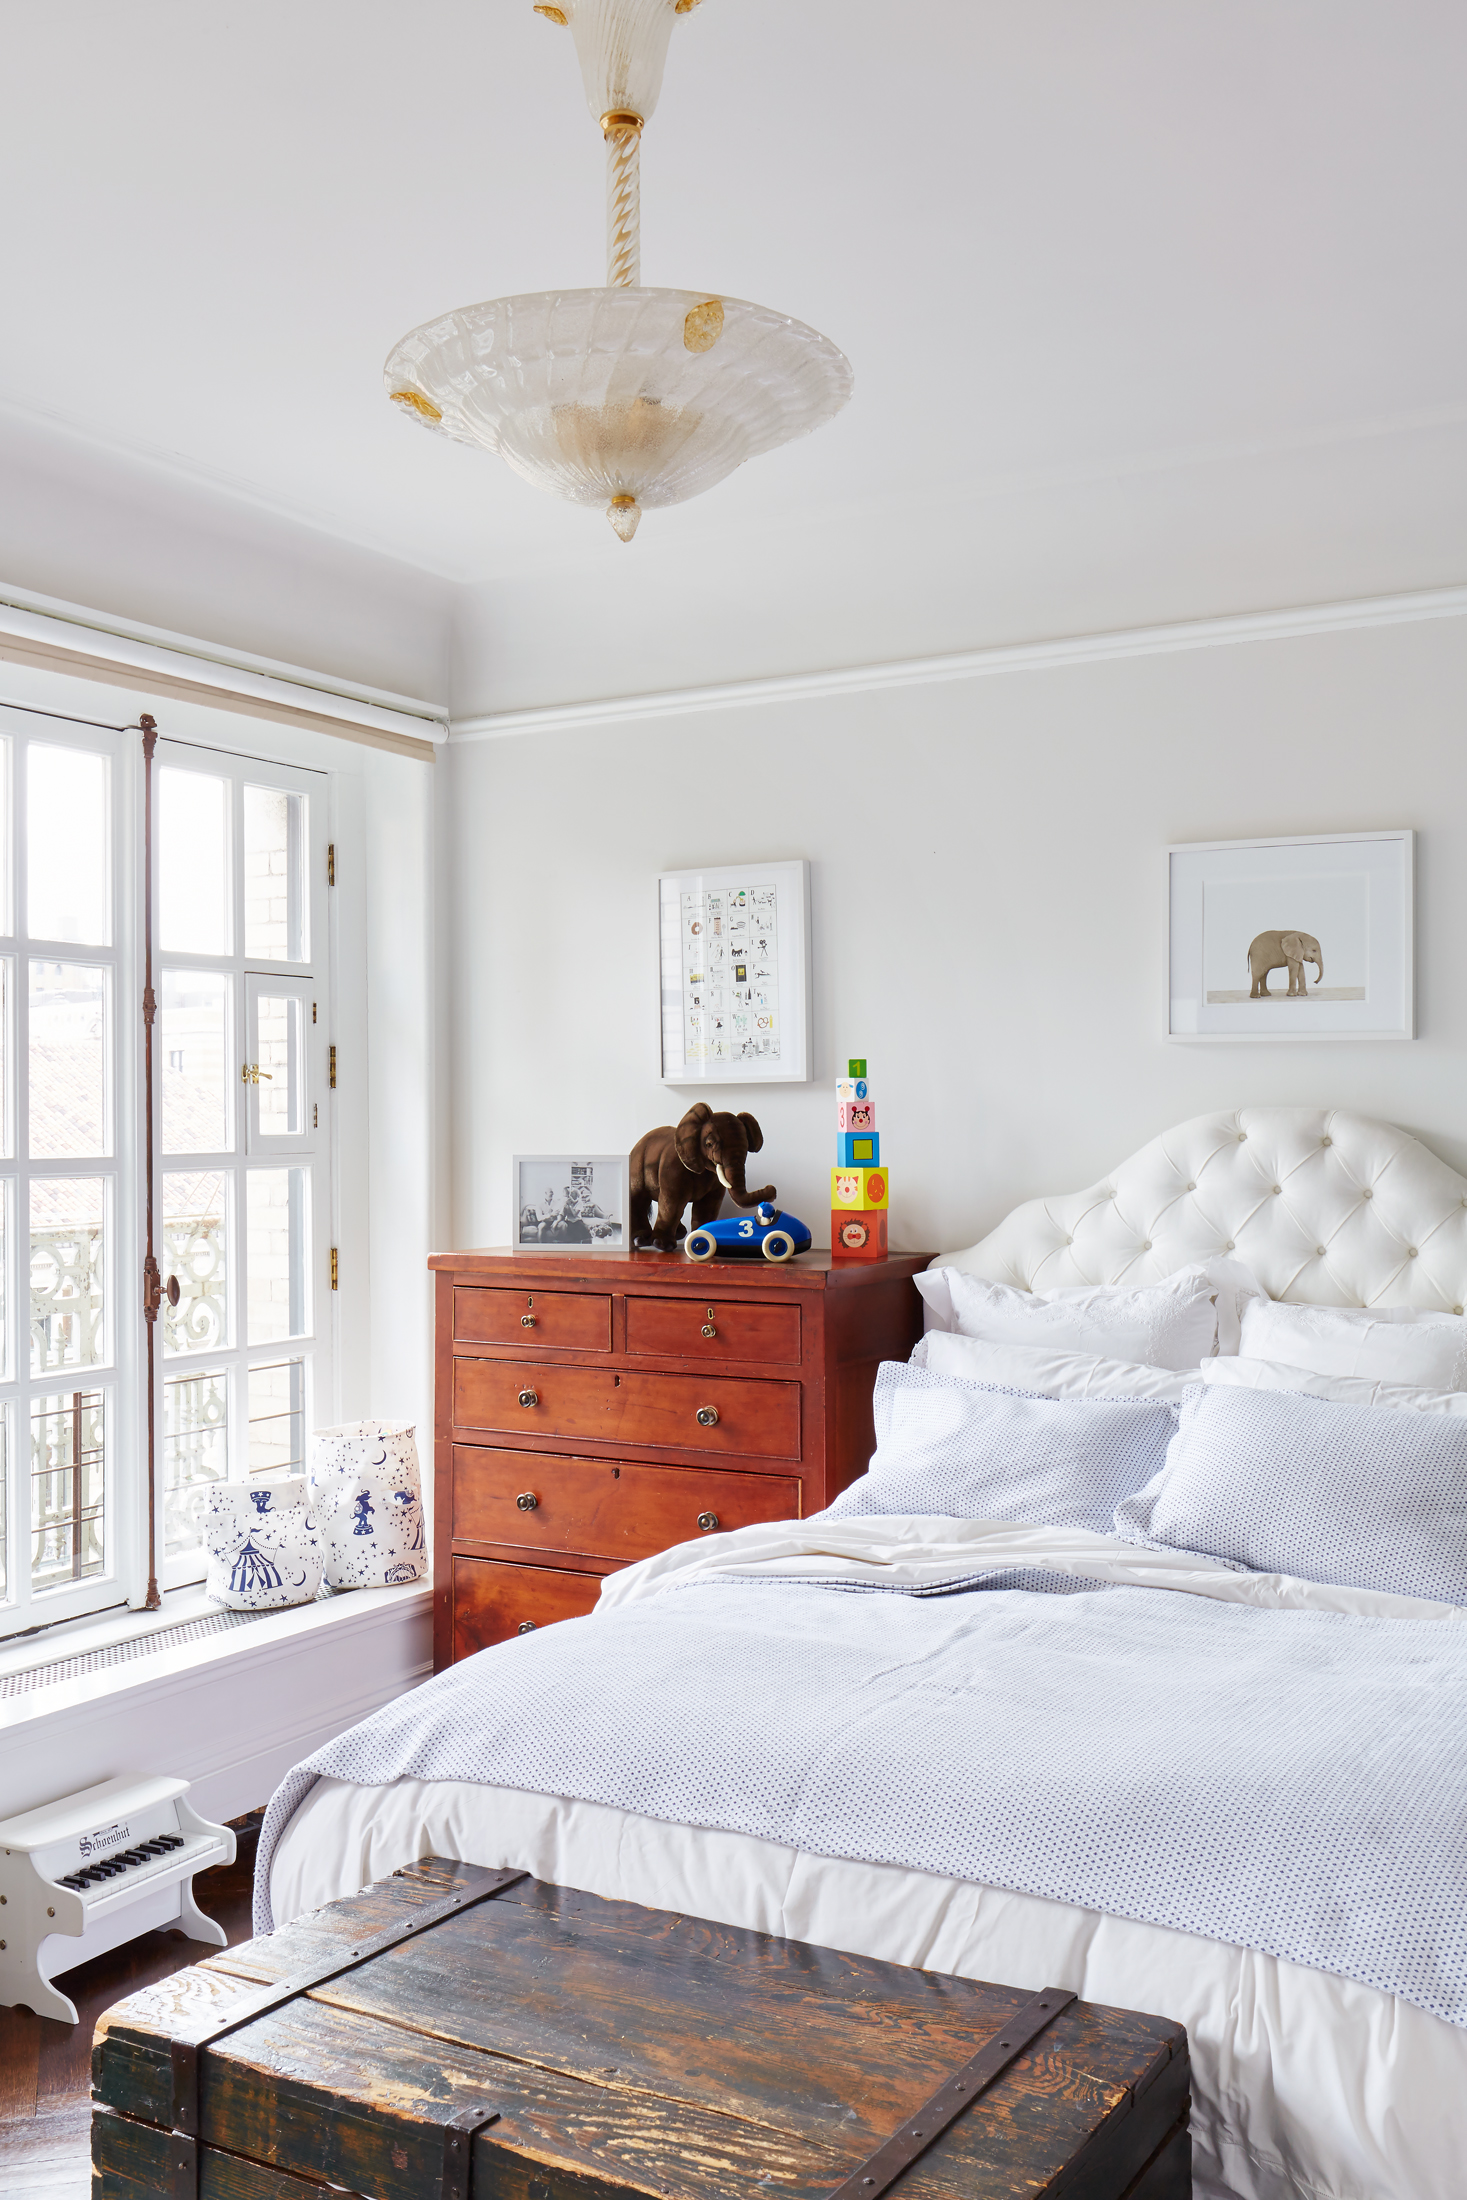 Private Residence  Upper West Side NYC  The Laundress   Back to Portfolios